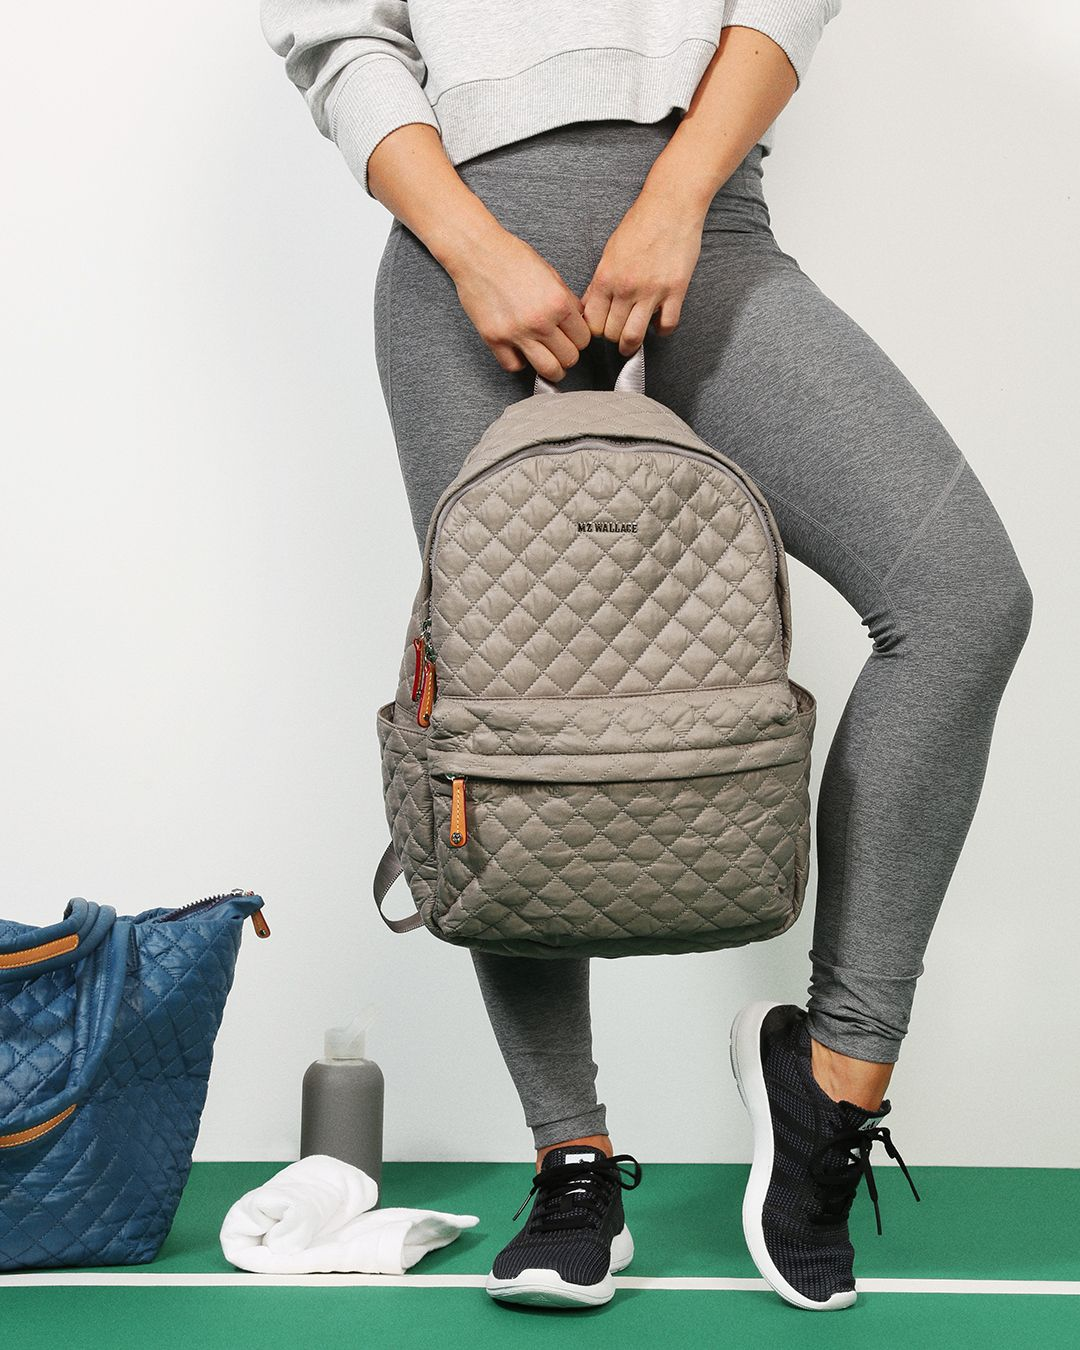 MZ Wallace Taupe Oxford Nylon Metro Backpack and Pacific Oxford Metro Tote  on the tennis court. 90984bdbc34de